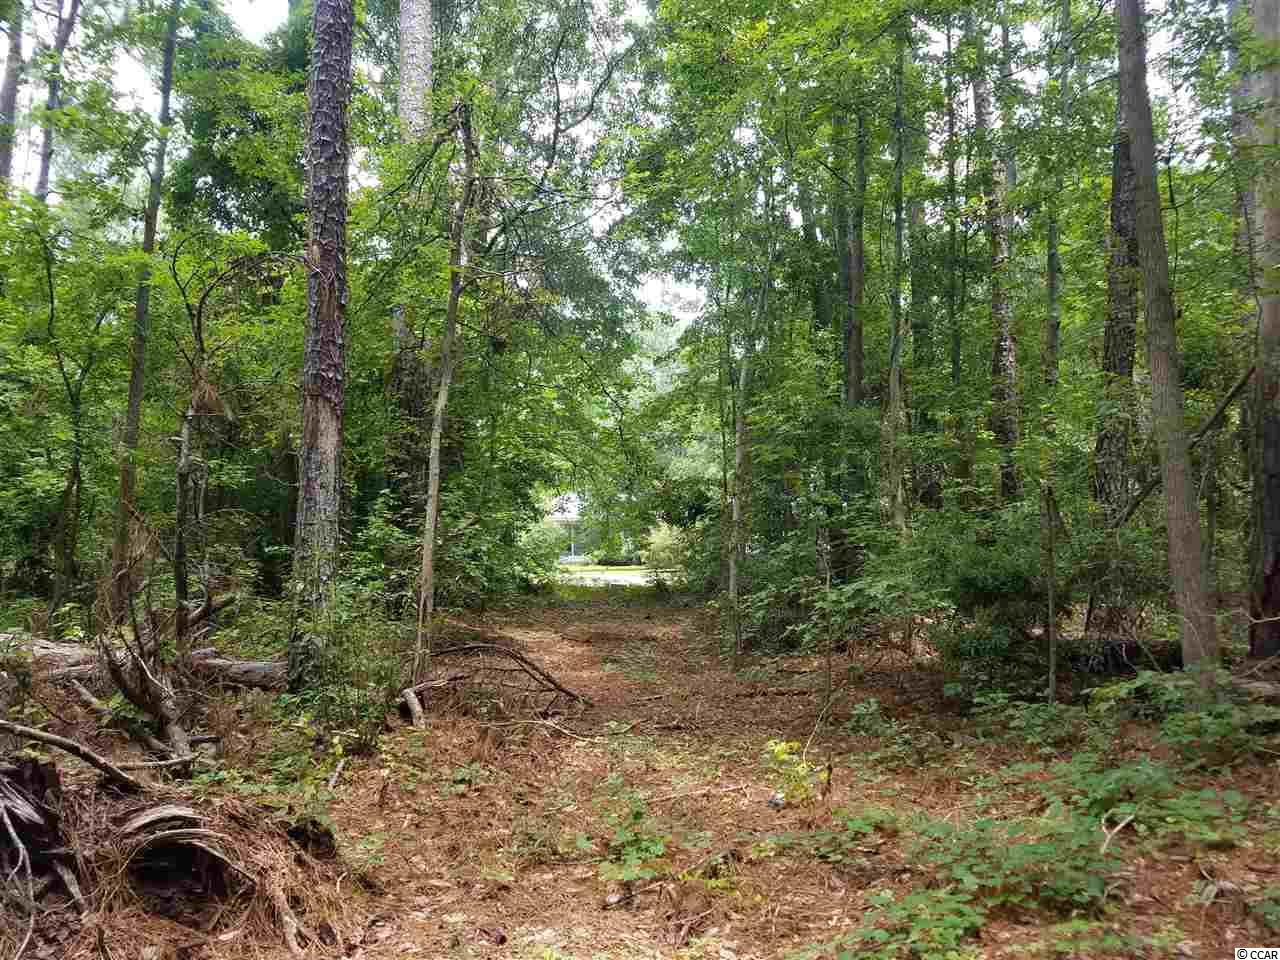 WONDERFUL OPPORTUNITY to own just under 1 acre of land in the beautiful low-county of Pawleys Island. This private home site is in the upscale Hagley Estates community which has NO HOA fees, no time frame to build, bring your own custom builder and enjoy your PRIVATE BOAT LAUNCH for Hagley residents only. This quiet, dead-end street is also only minutes to the Ocean, walking distance to the Intracoastal Waterway, and situated among several WORLD CLASS GOLF courses. Pawleys Island is located between Myrtle Beach and Georgetown, SC and offers amazing restaurants, great schools, hospitals, and the famous Hammock Shops for a relaxing day of shopping. Come view this property today!